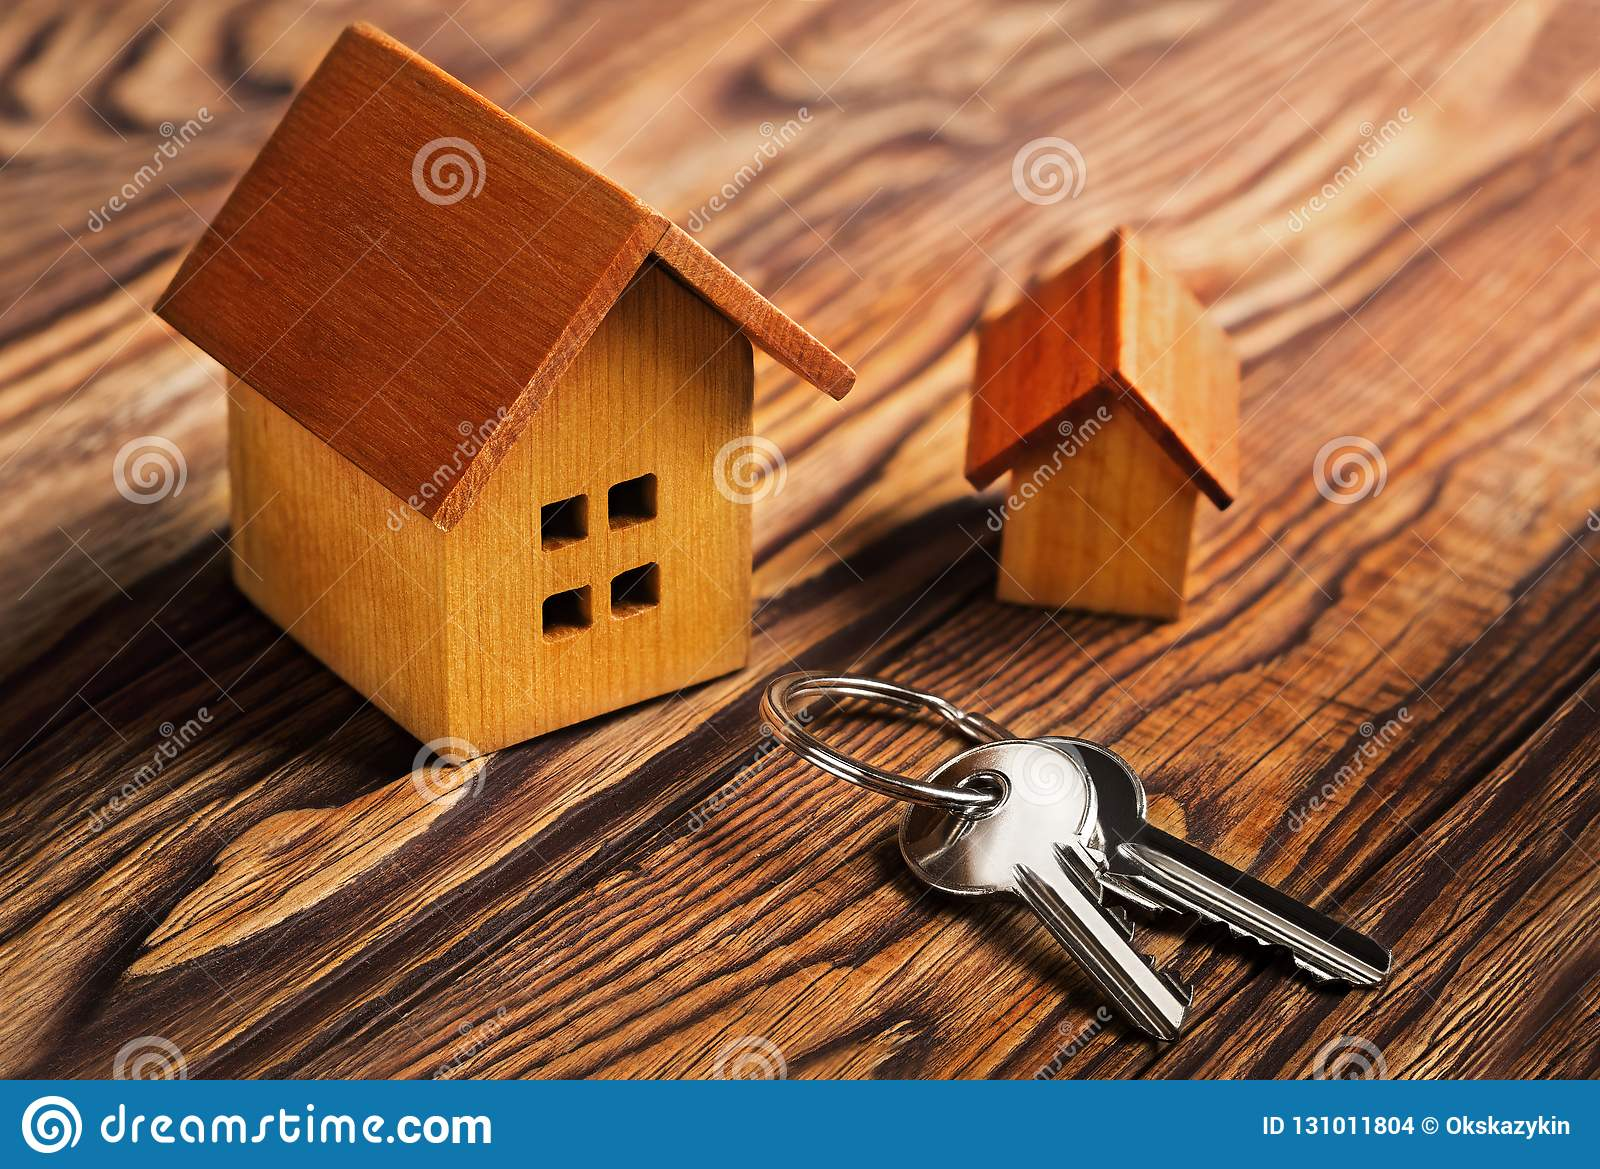 Real estate concept with house and key on wooden background. Idea for real estate concept, personal property an